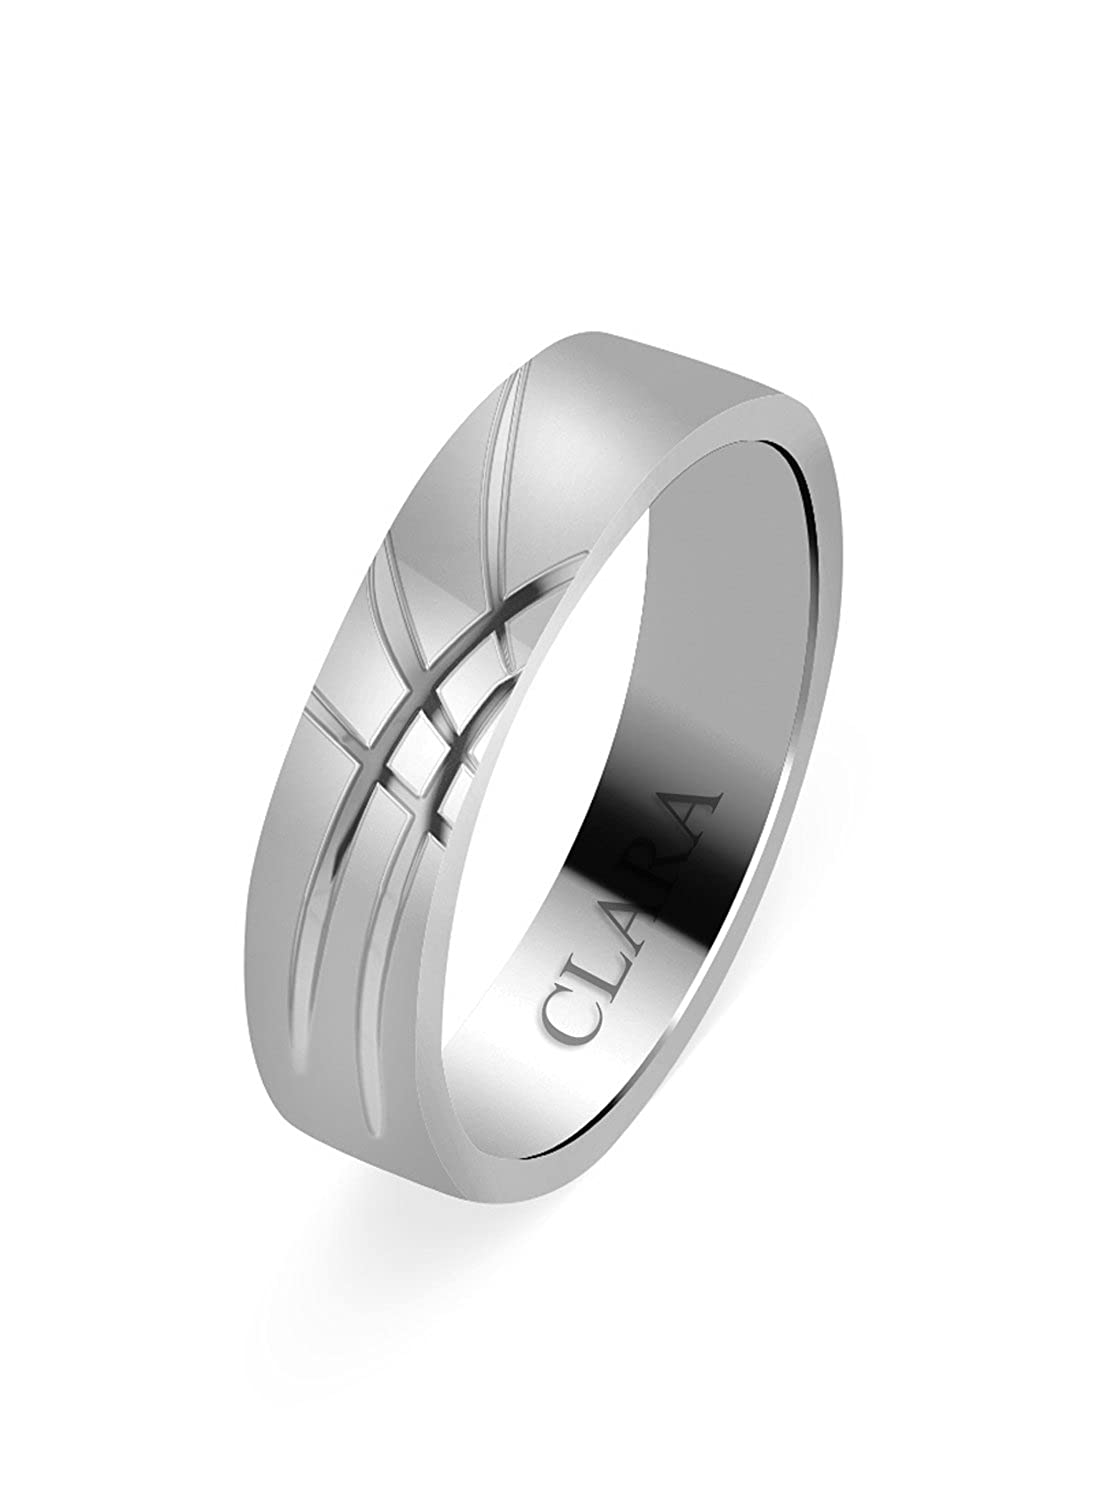 rings engagement wedding collection within functional bvlgari elegant diamond com mens matvuk luxury